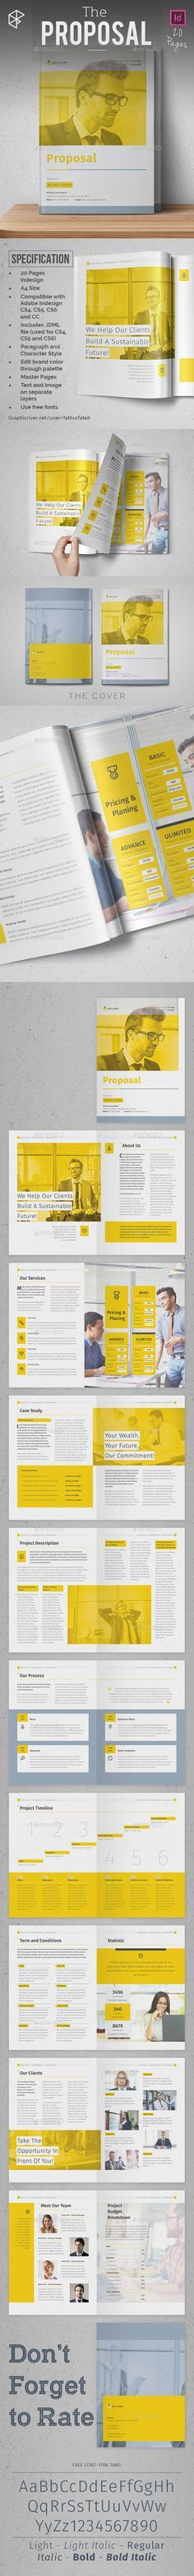 Mobile App Proposal Template | Proposal templates, Mobile app and ...